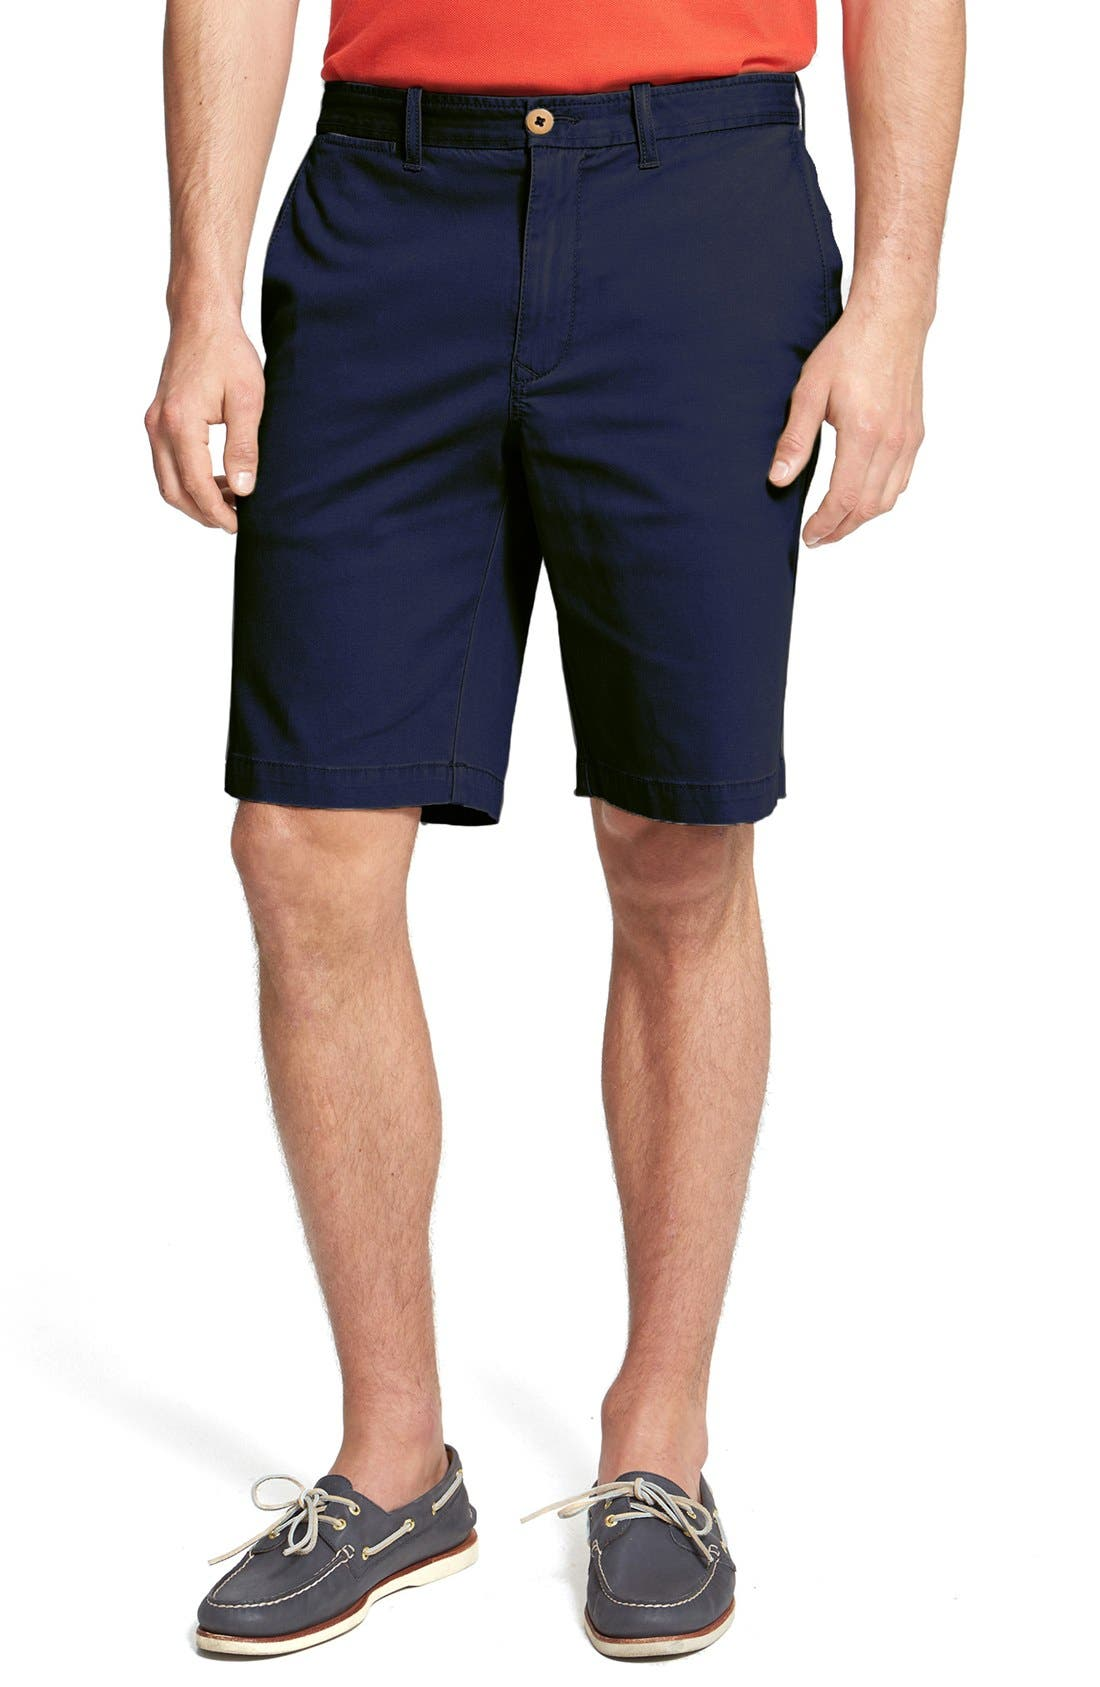 Alternate Image 1 Selected - Tommy Bahama 'Bedford & Son' Corduroy Walking Shorts (Big & Tall)